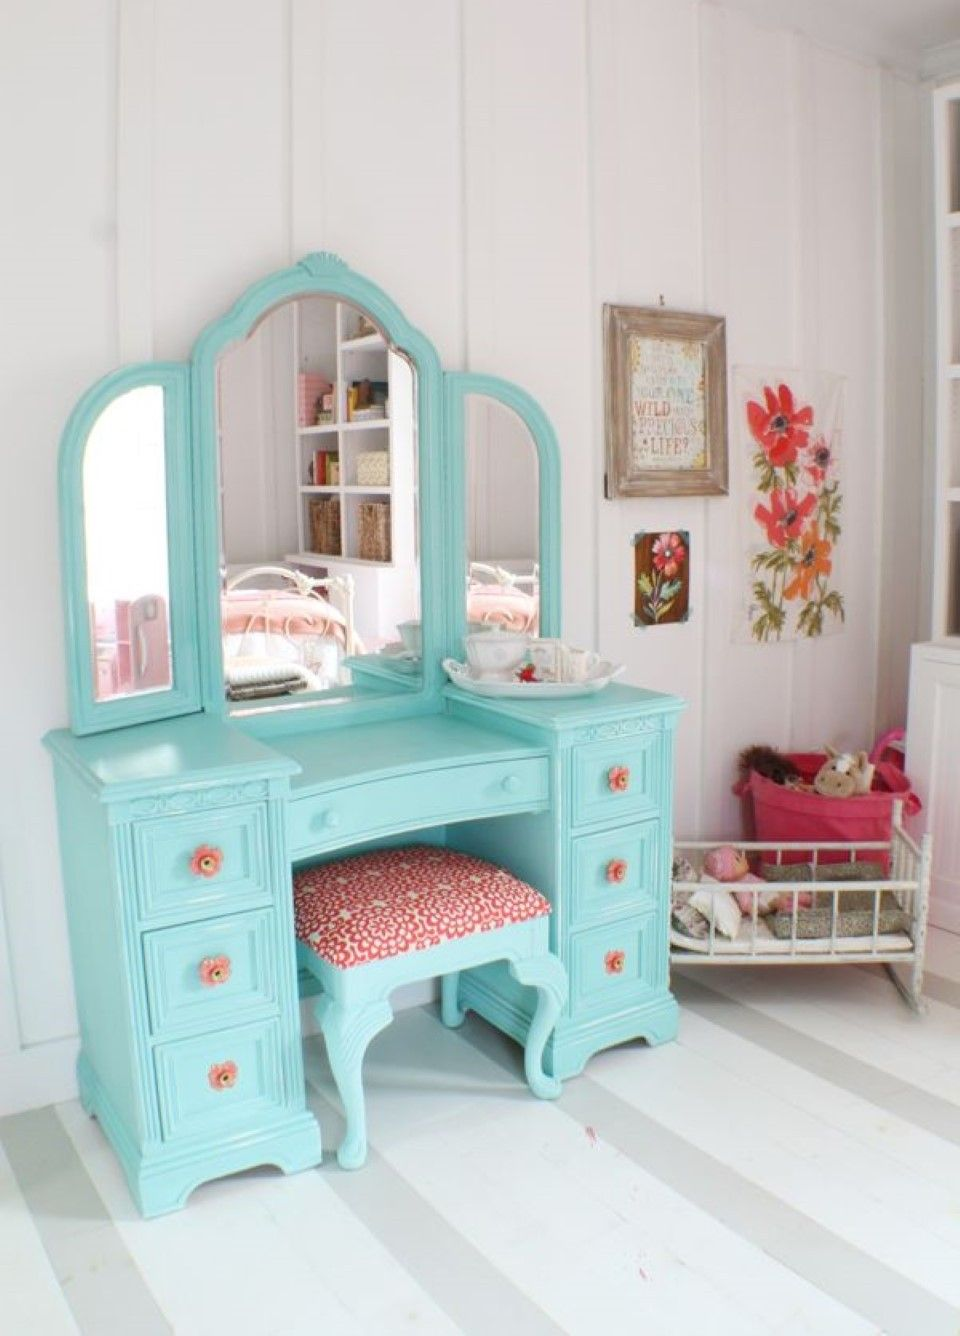 Bedroom ideas for teenage girls teal and pink - Cute Dressing Table Redo For A Little Girl Or Teen